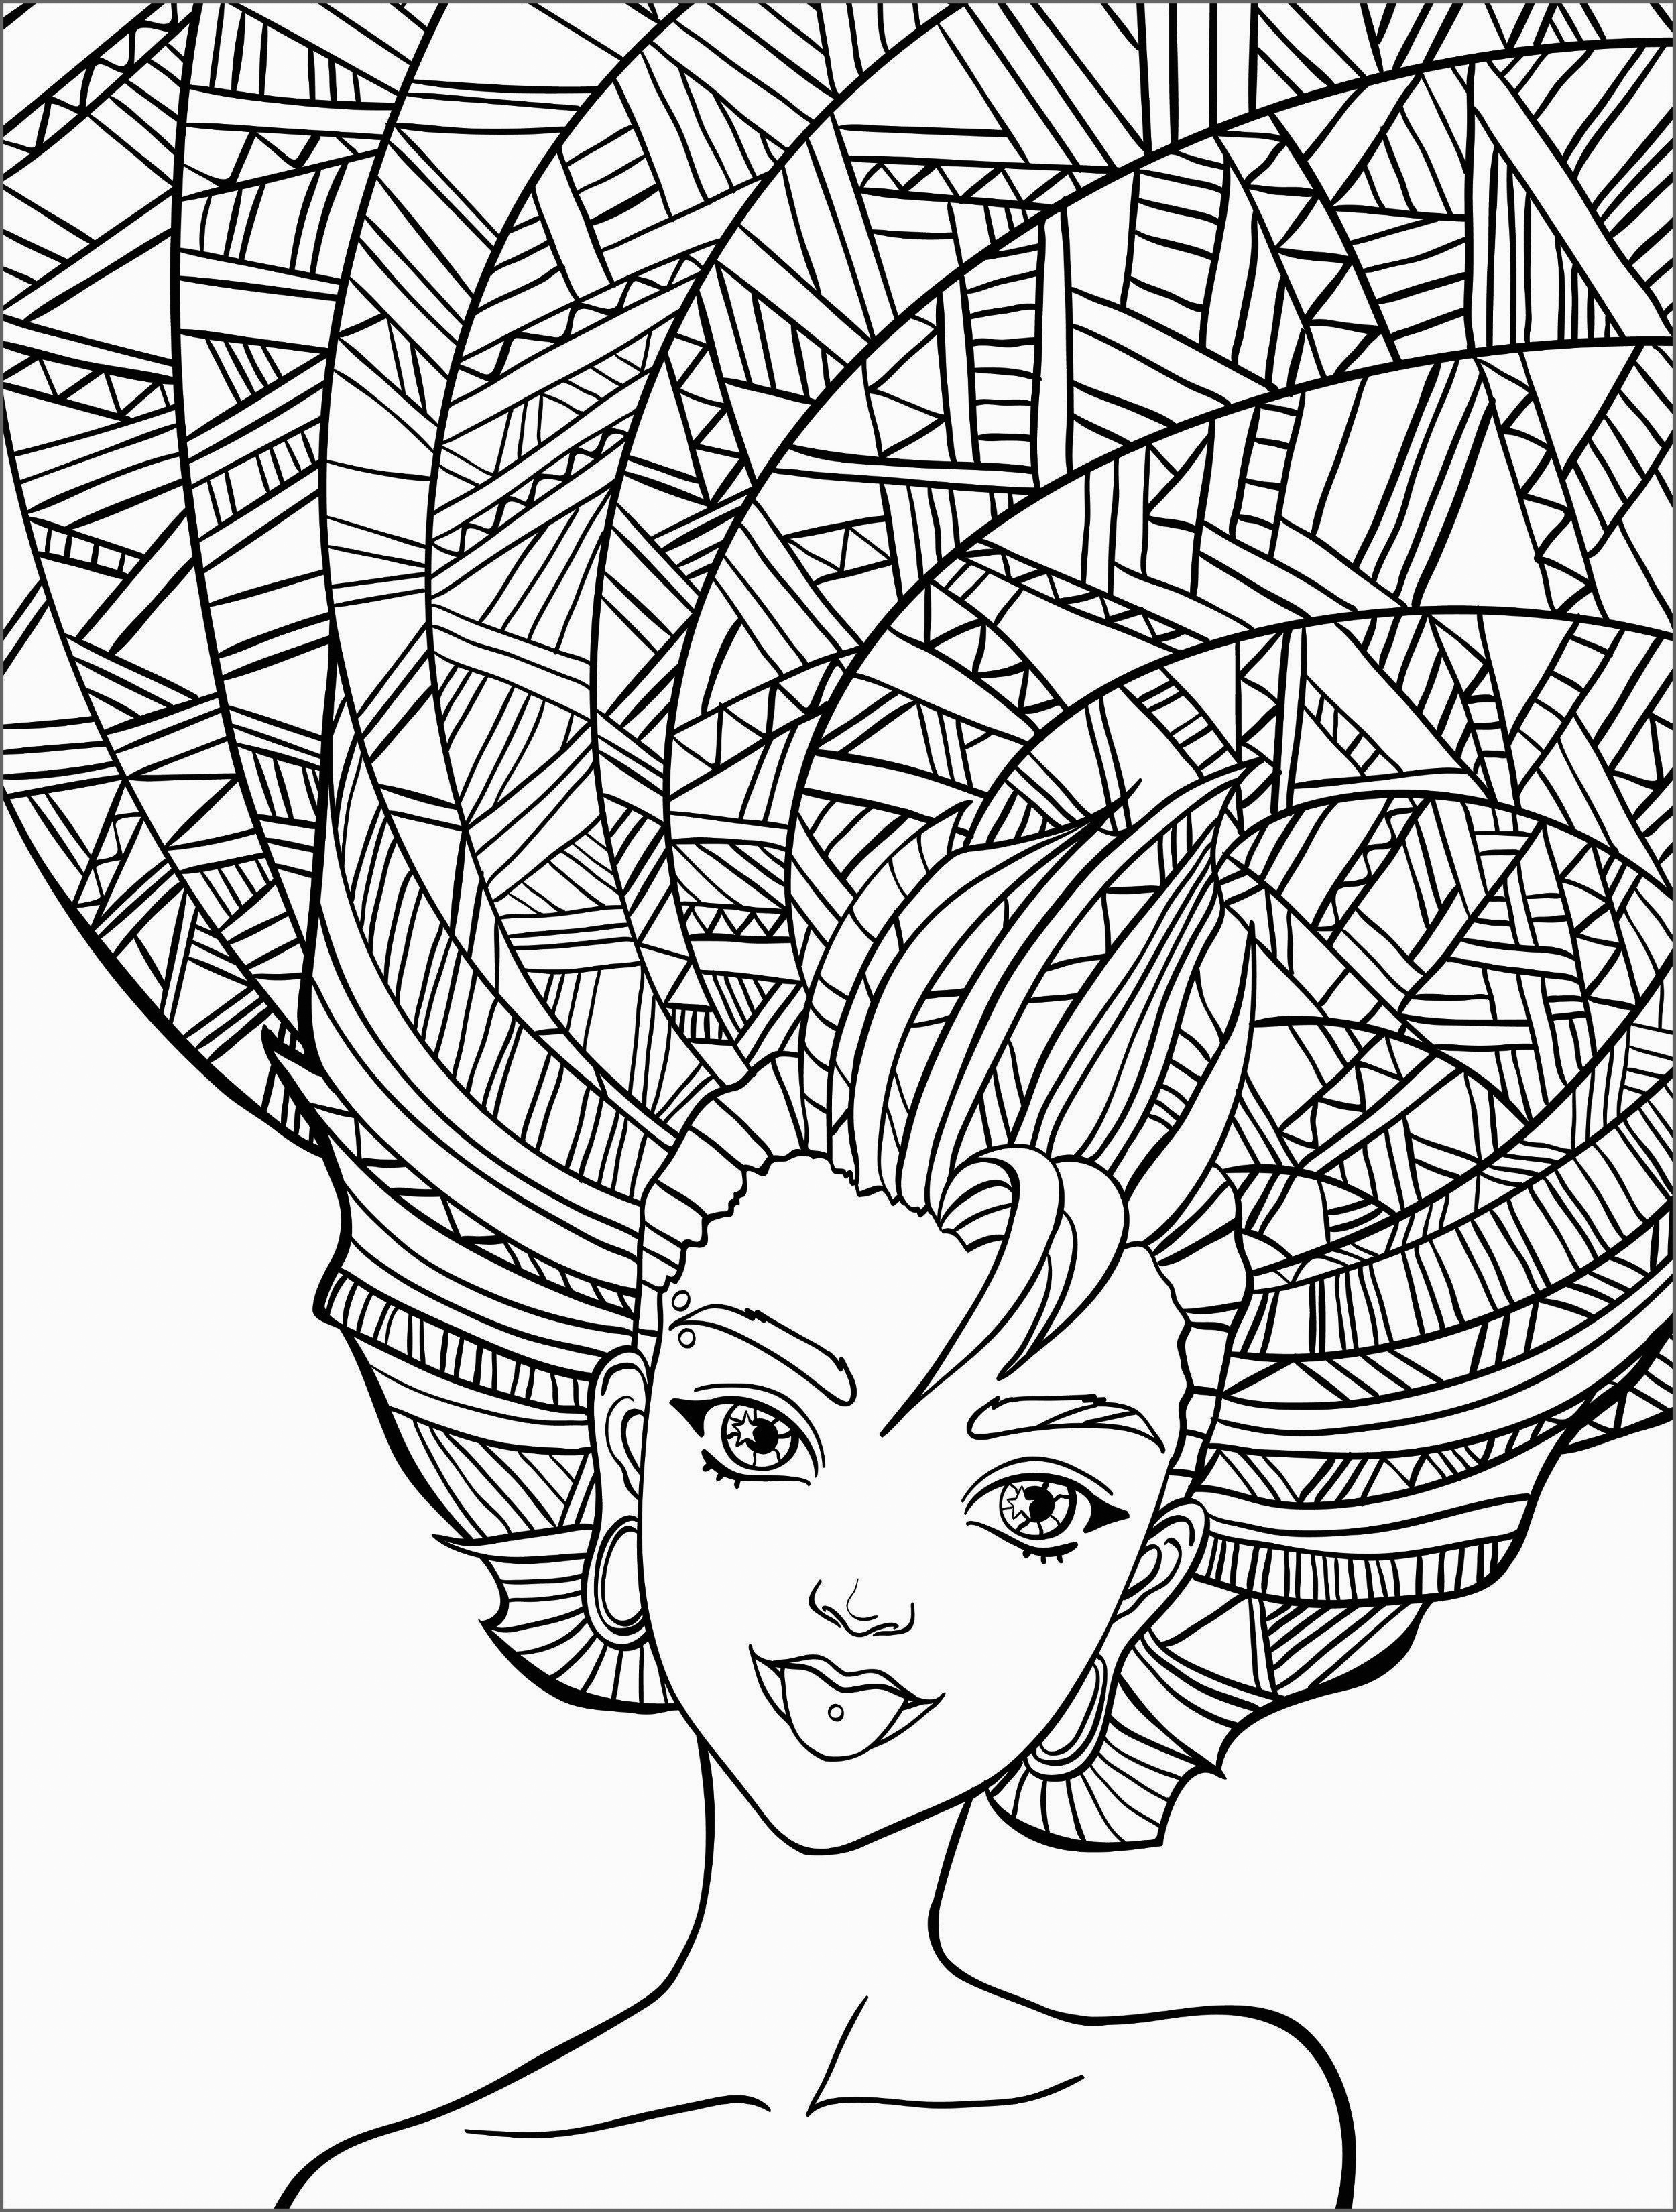 This is a photo of Astounding Free Printable Pictures to Color